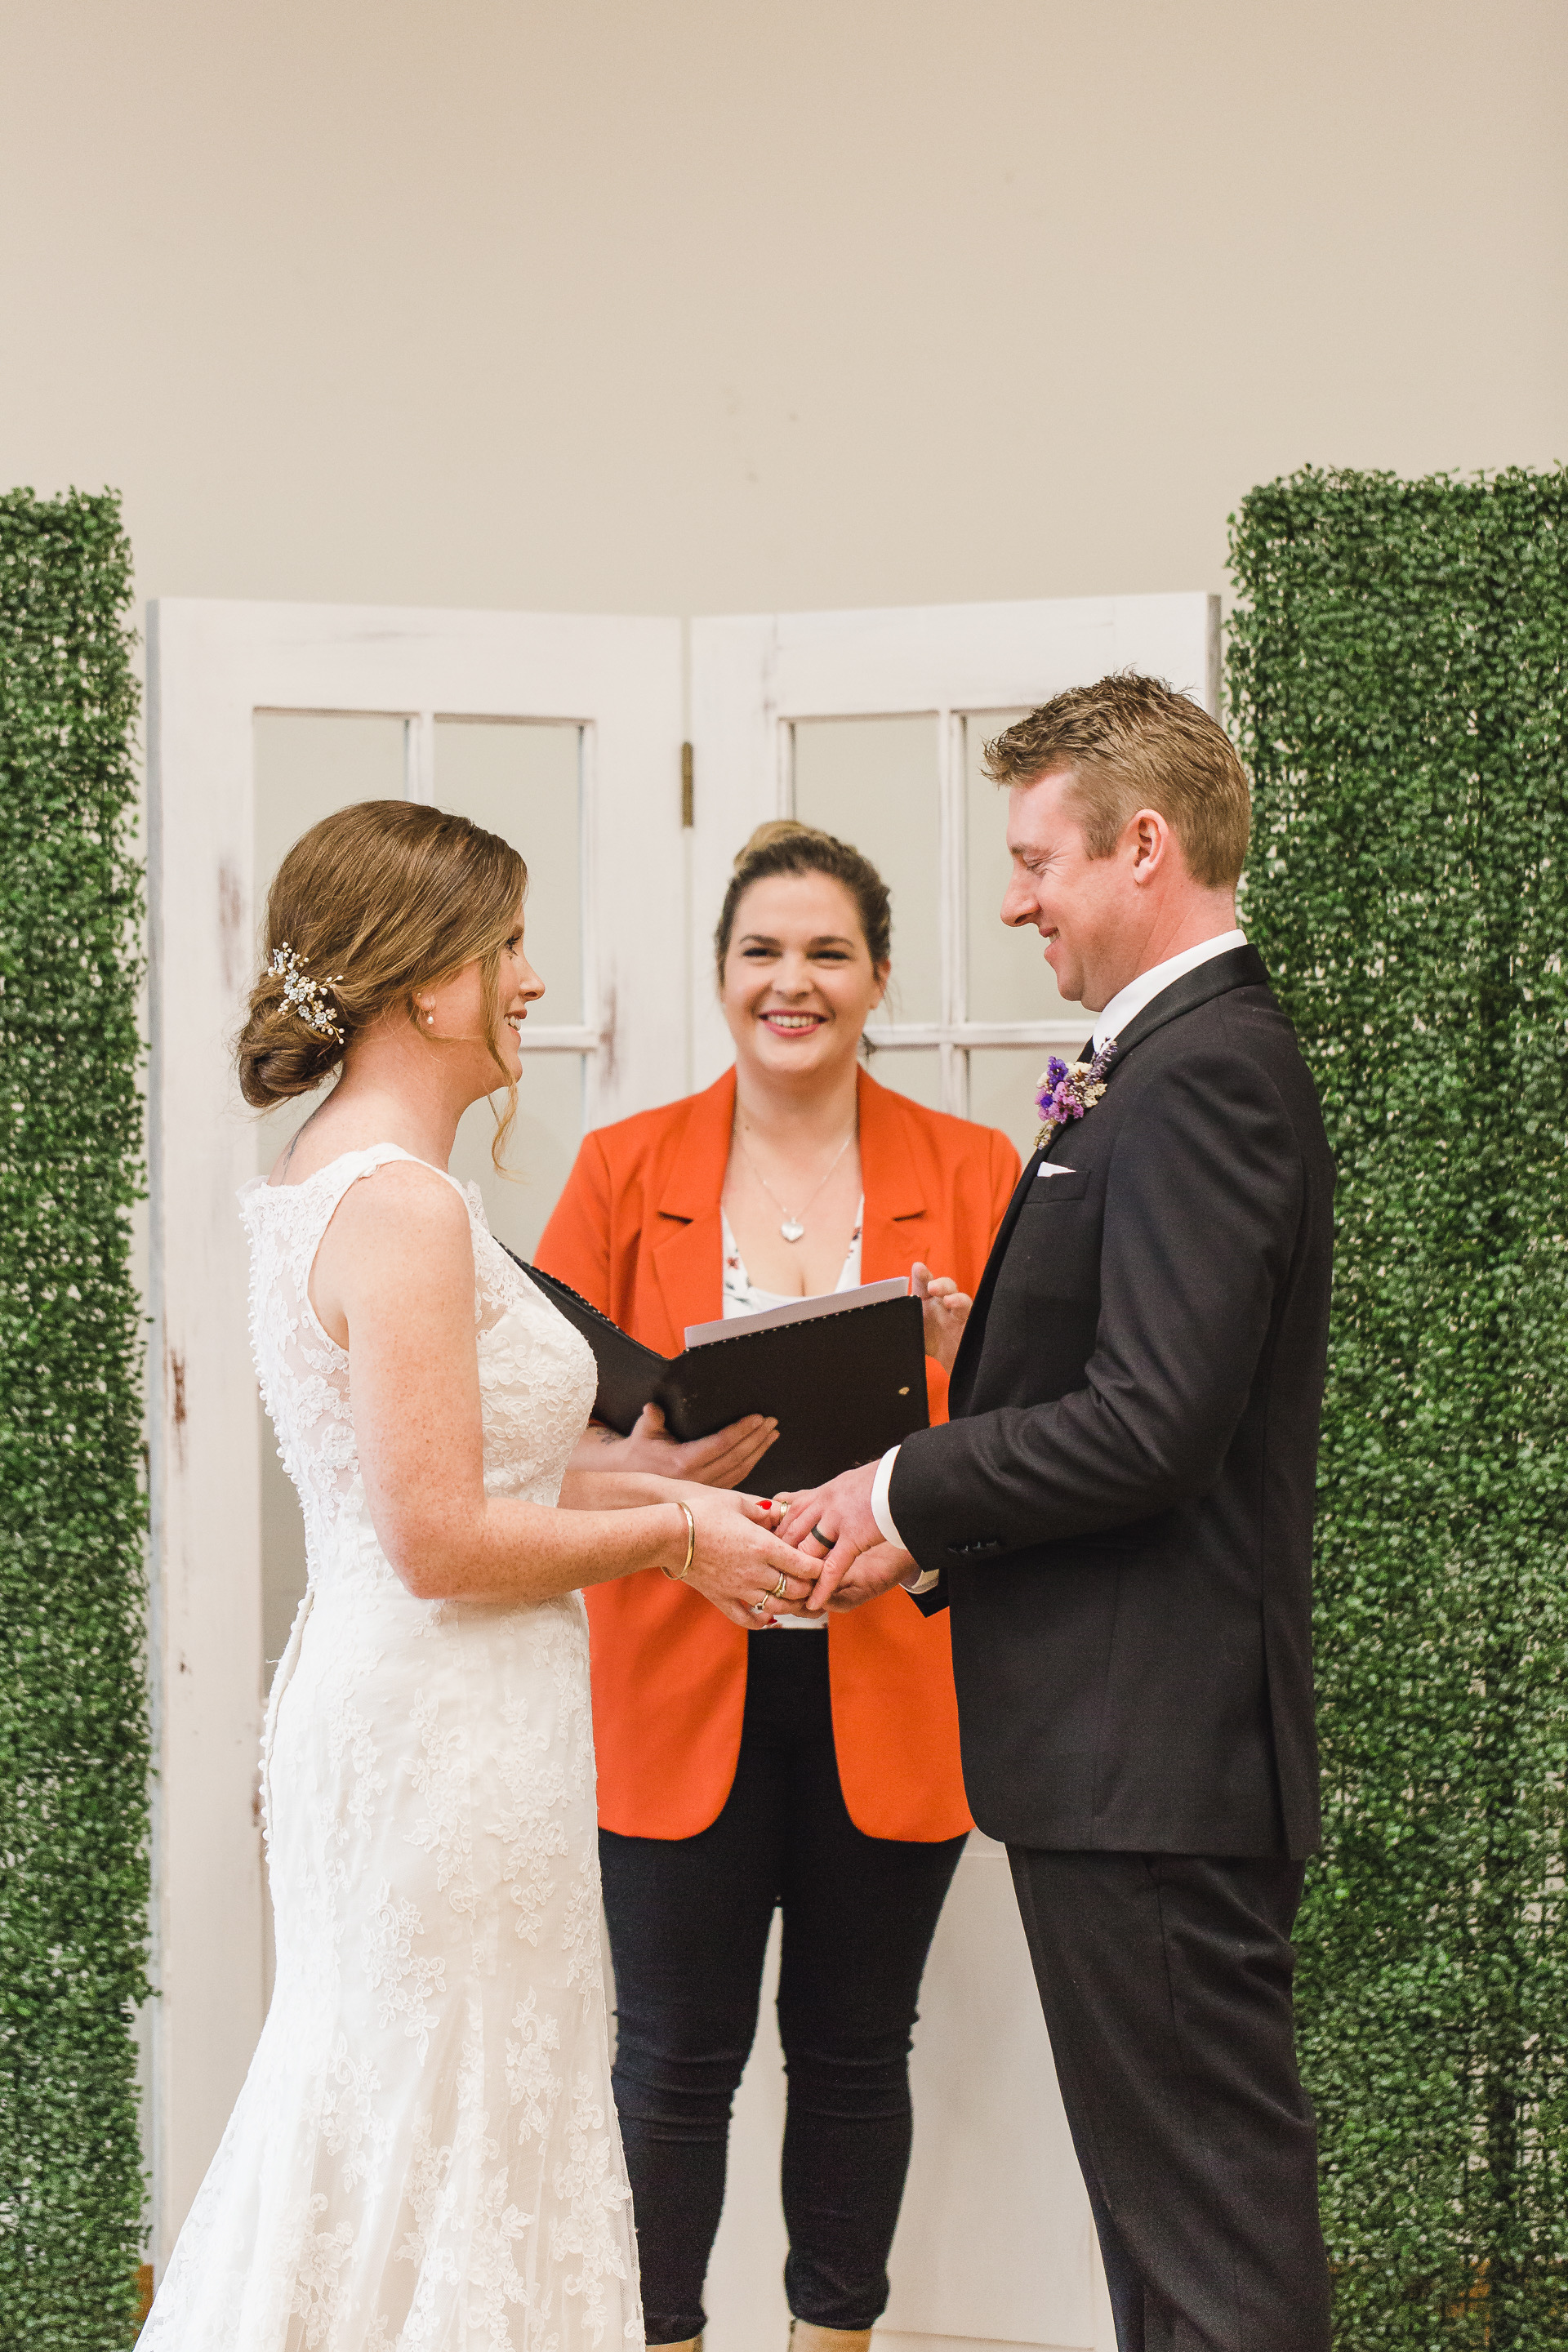 Jessica & Andrew - THANK YOU so much for making our day perfect. and for giving us the ceremony we wanted. it was so nice only having to remember i do and you made us both so relaxed.